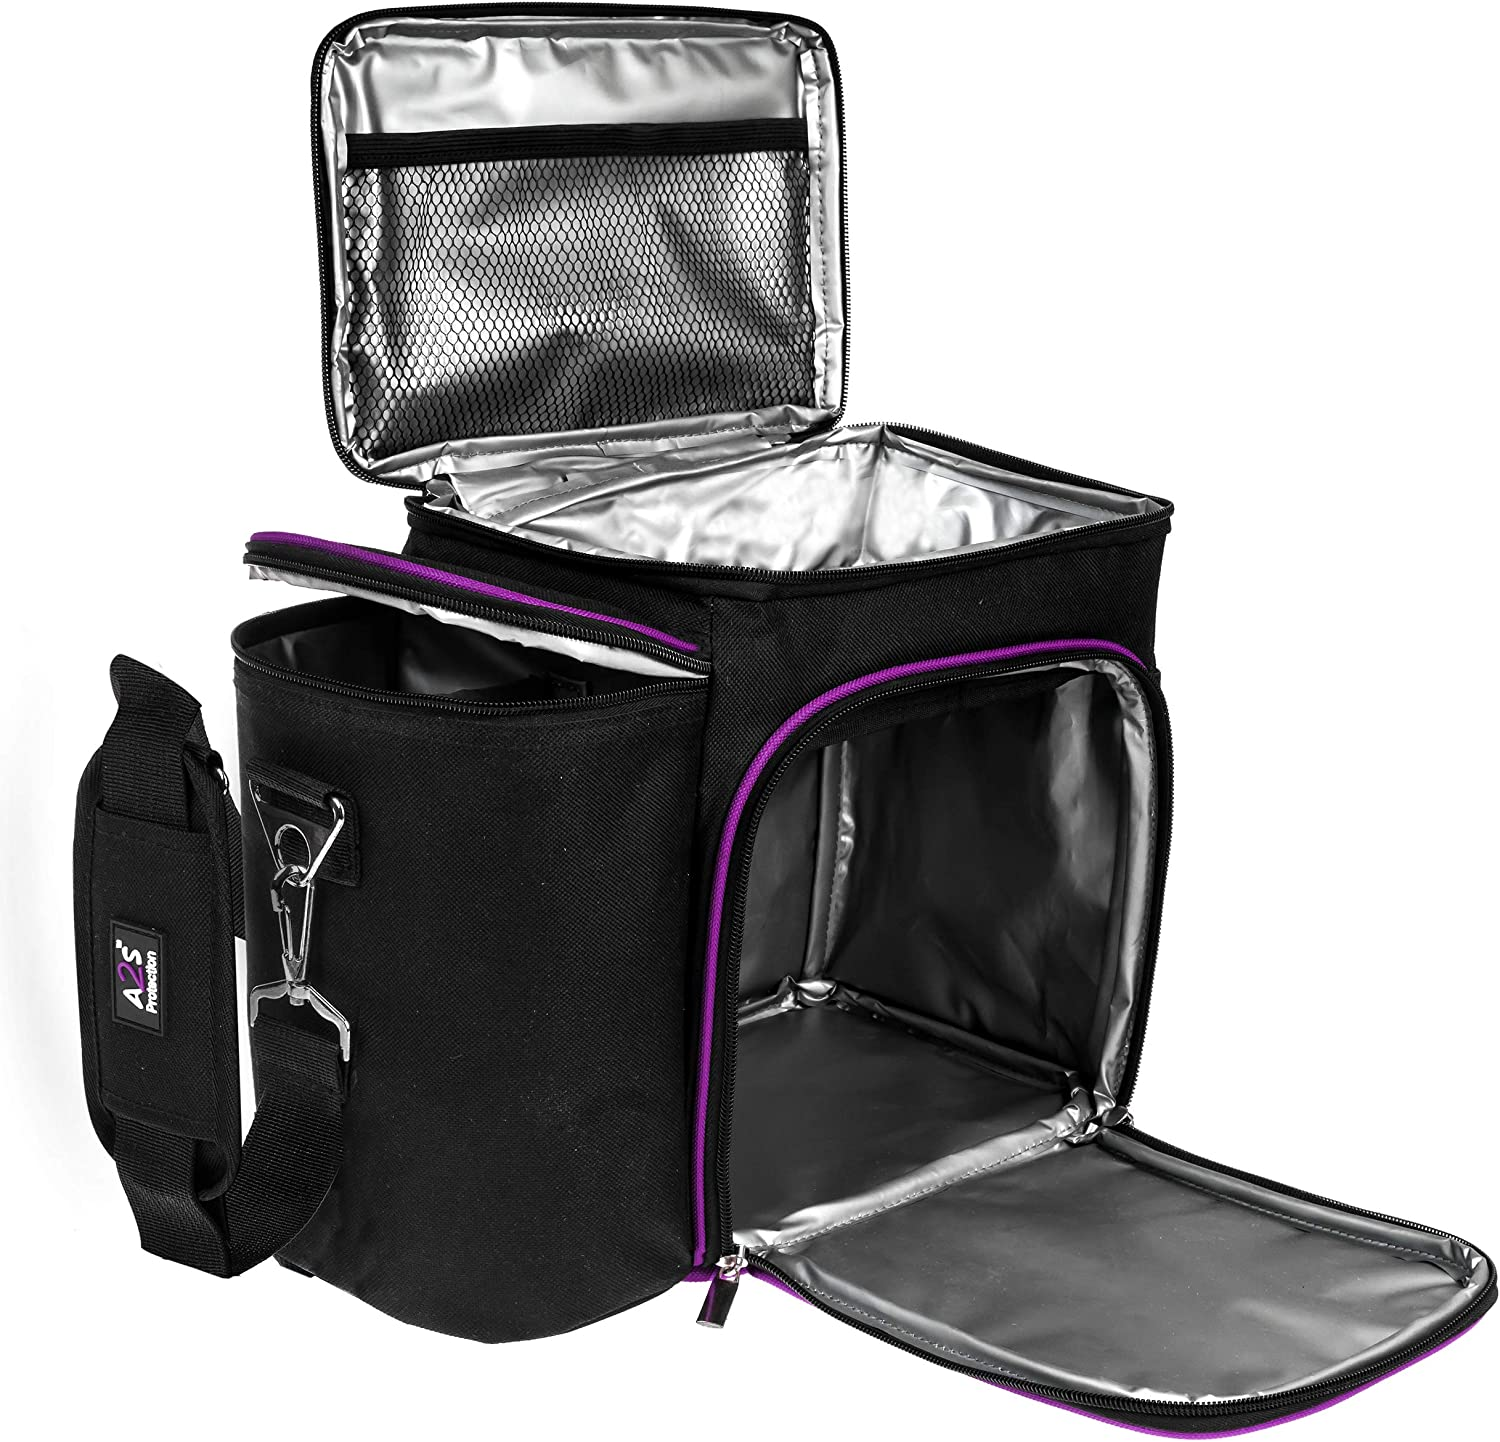 A2S Meal Prep Lunch Box - Cooler Bag - Meal Bag - Keep your Daily Food Snacks & Beverages Cool and Intact (Black/Purple Bag Only)